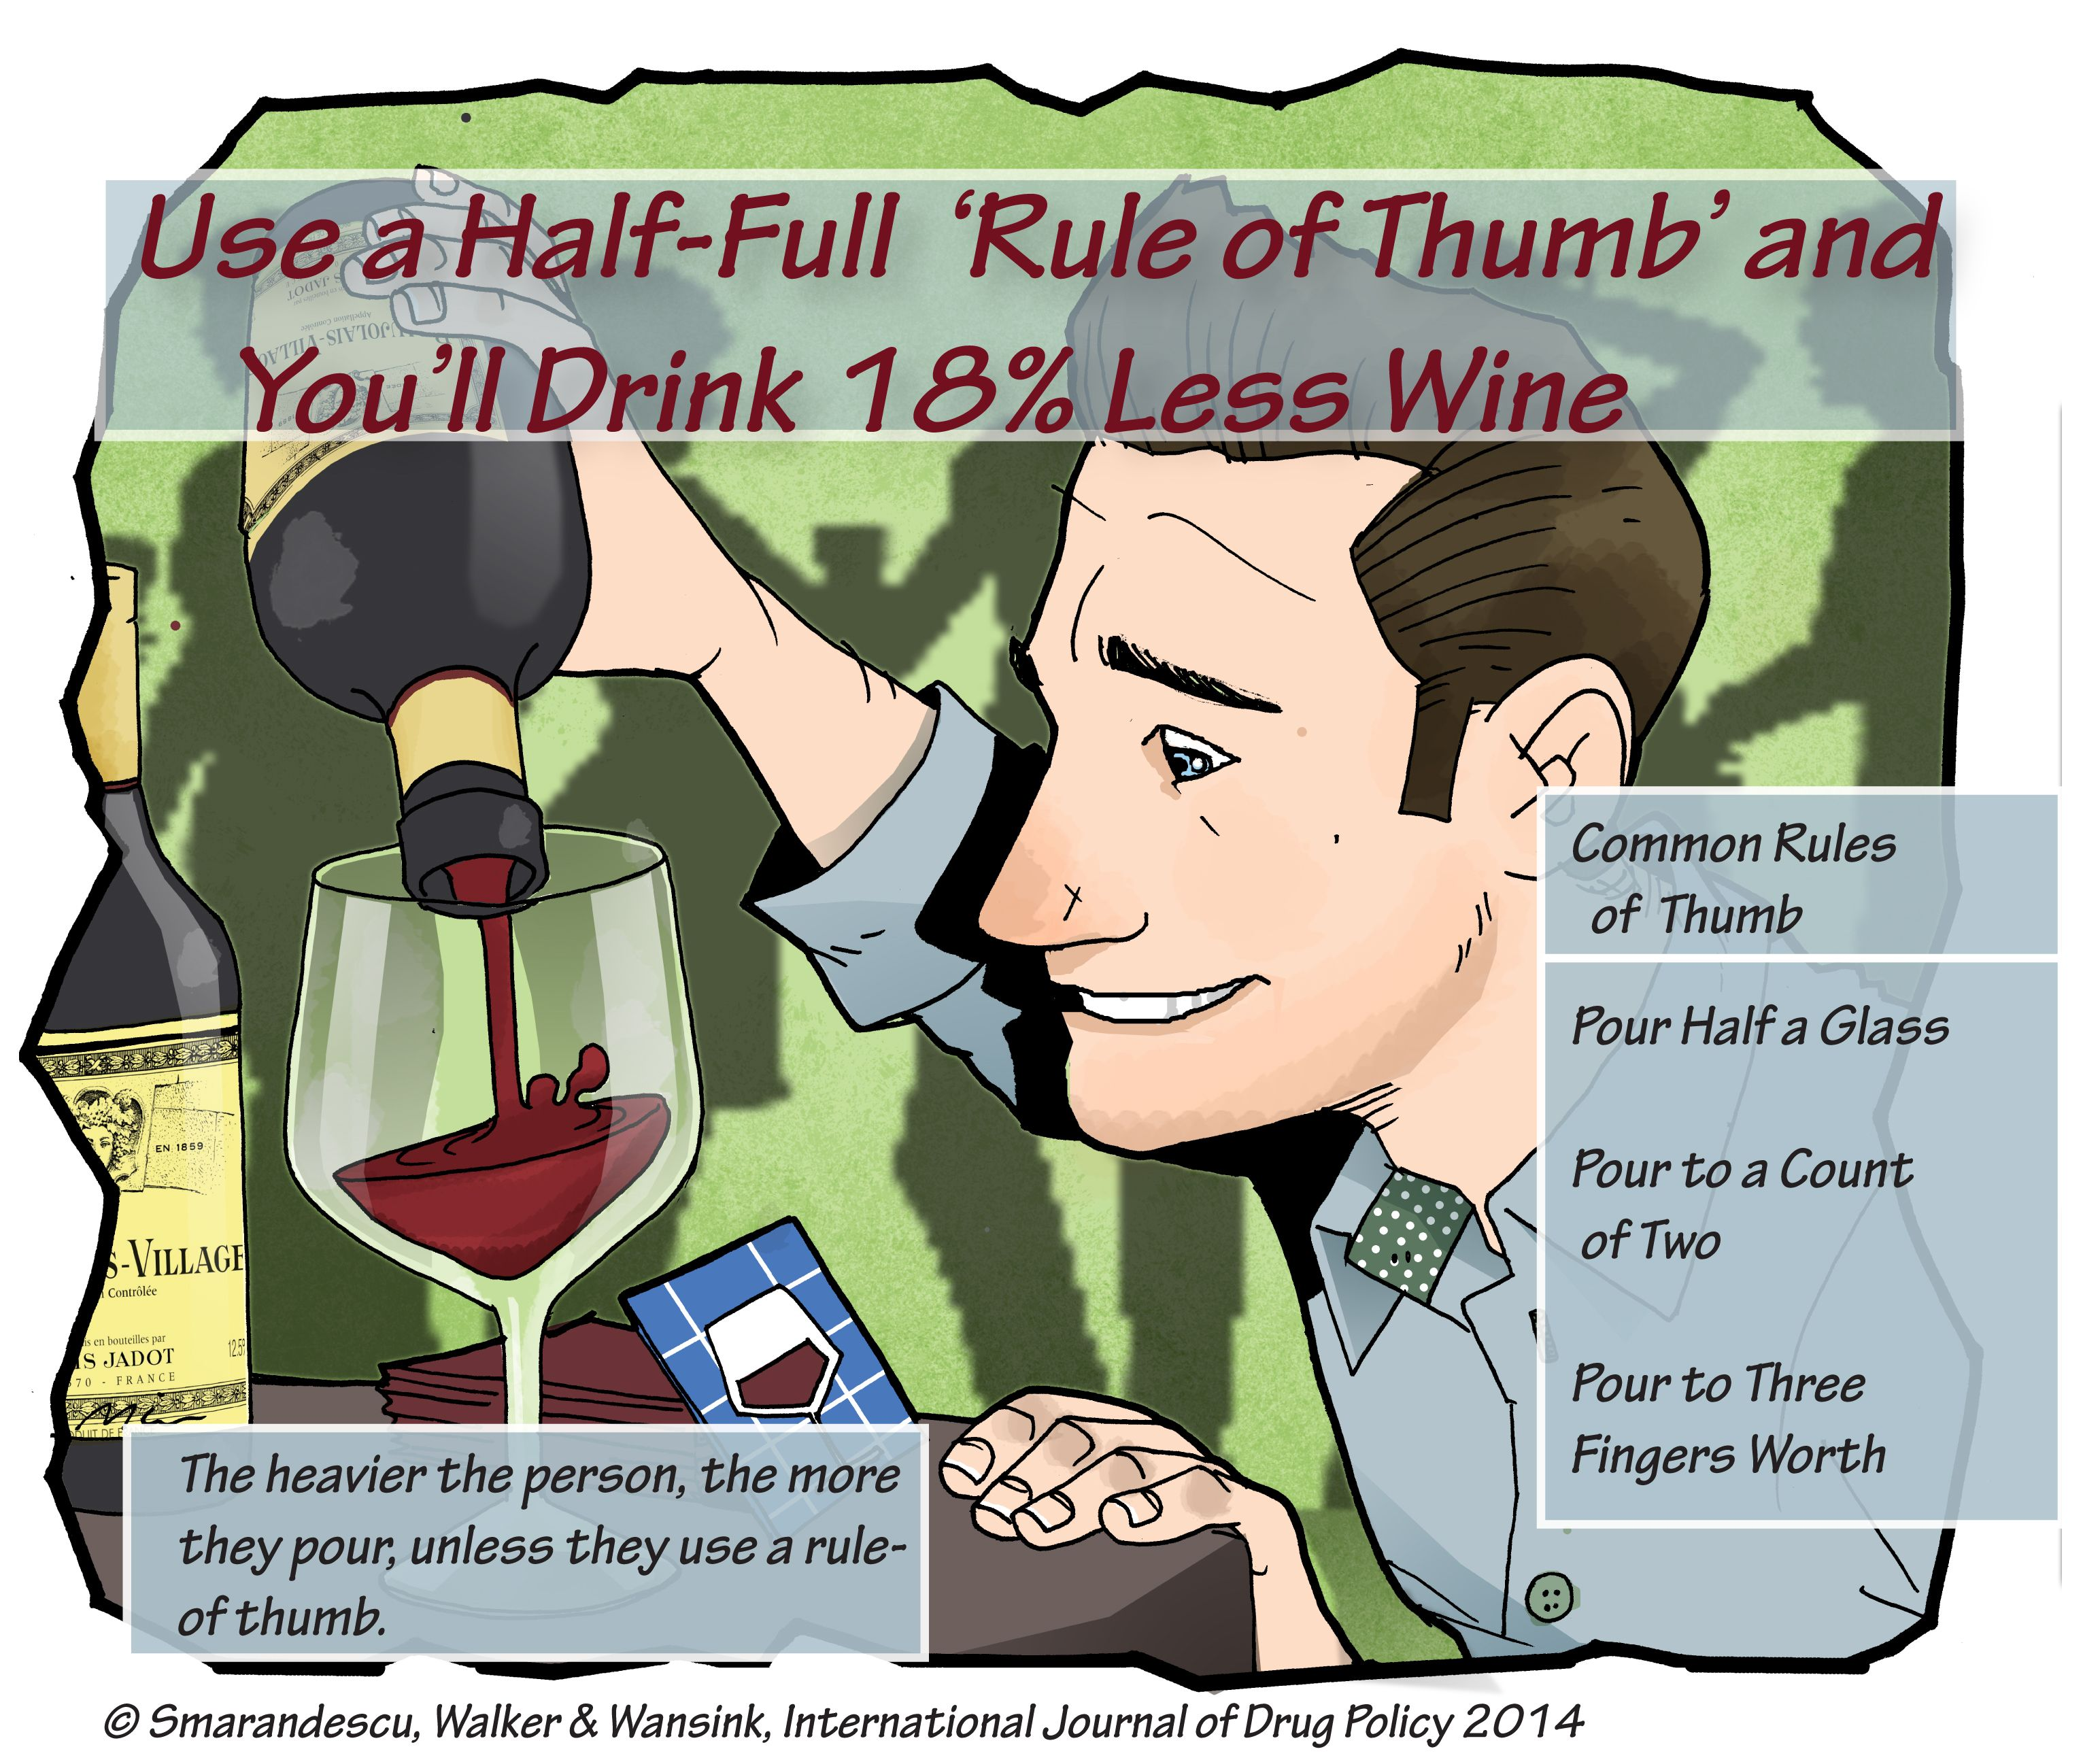 Big Drinkers:  How BMI, Gender and Rules of Thumb Influence the Free Pouring of Wine, brian wansink, doug walker, laura smarandescu, international journal of drug policy, rule of thumb, wine, food and brand lab, cornell university